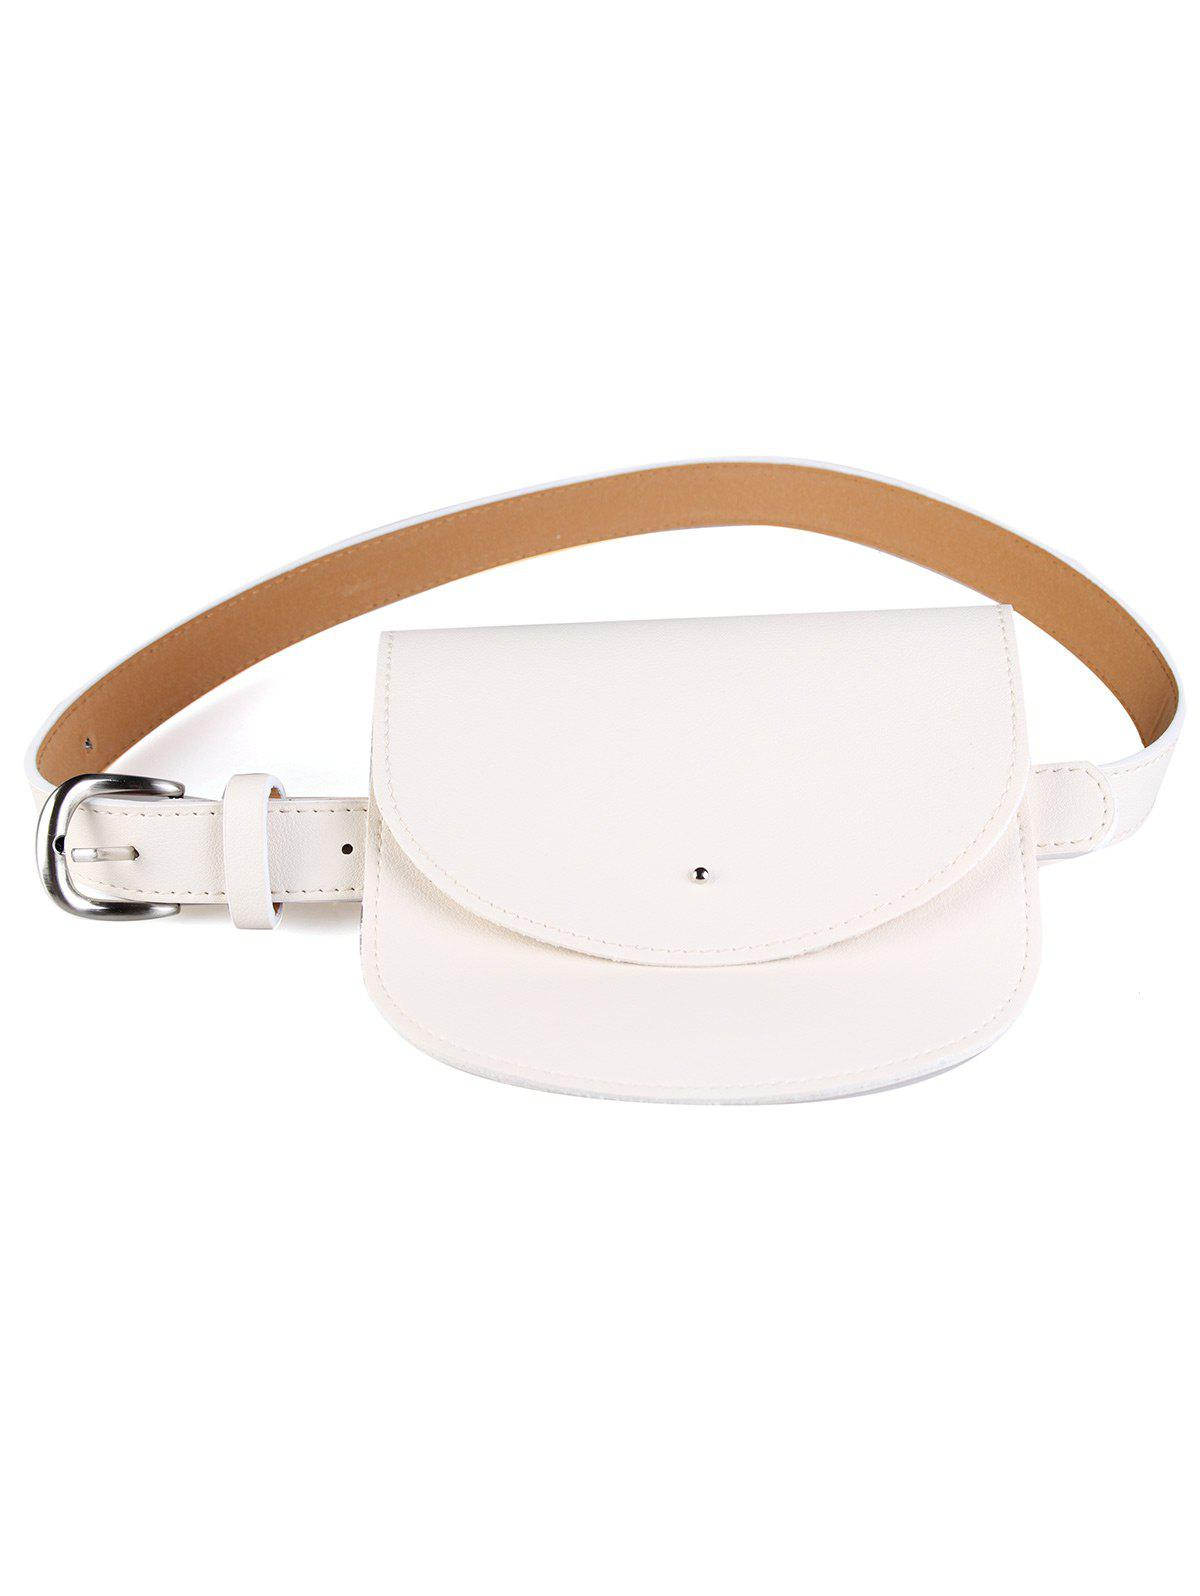 Vintage Mini Bag Embellished Artificial Leather Waist Belt - GLITTER CREAMY WHITE